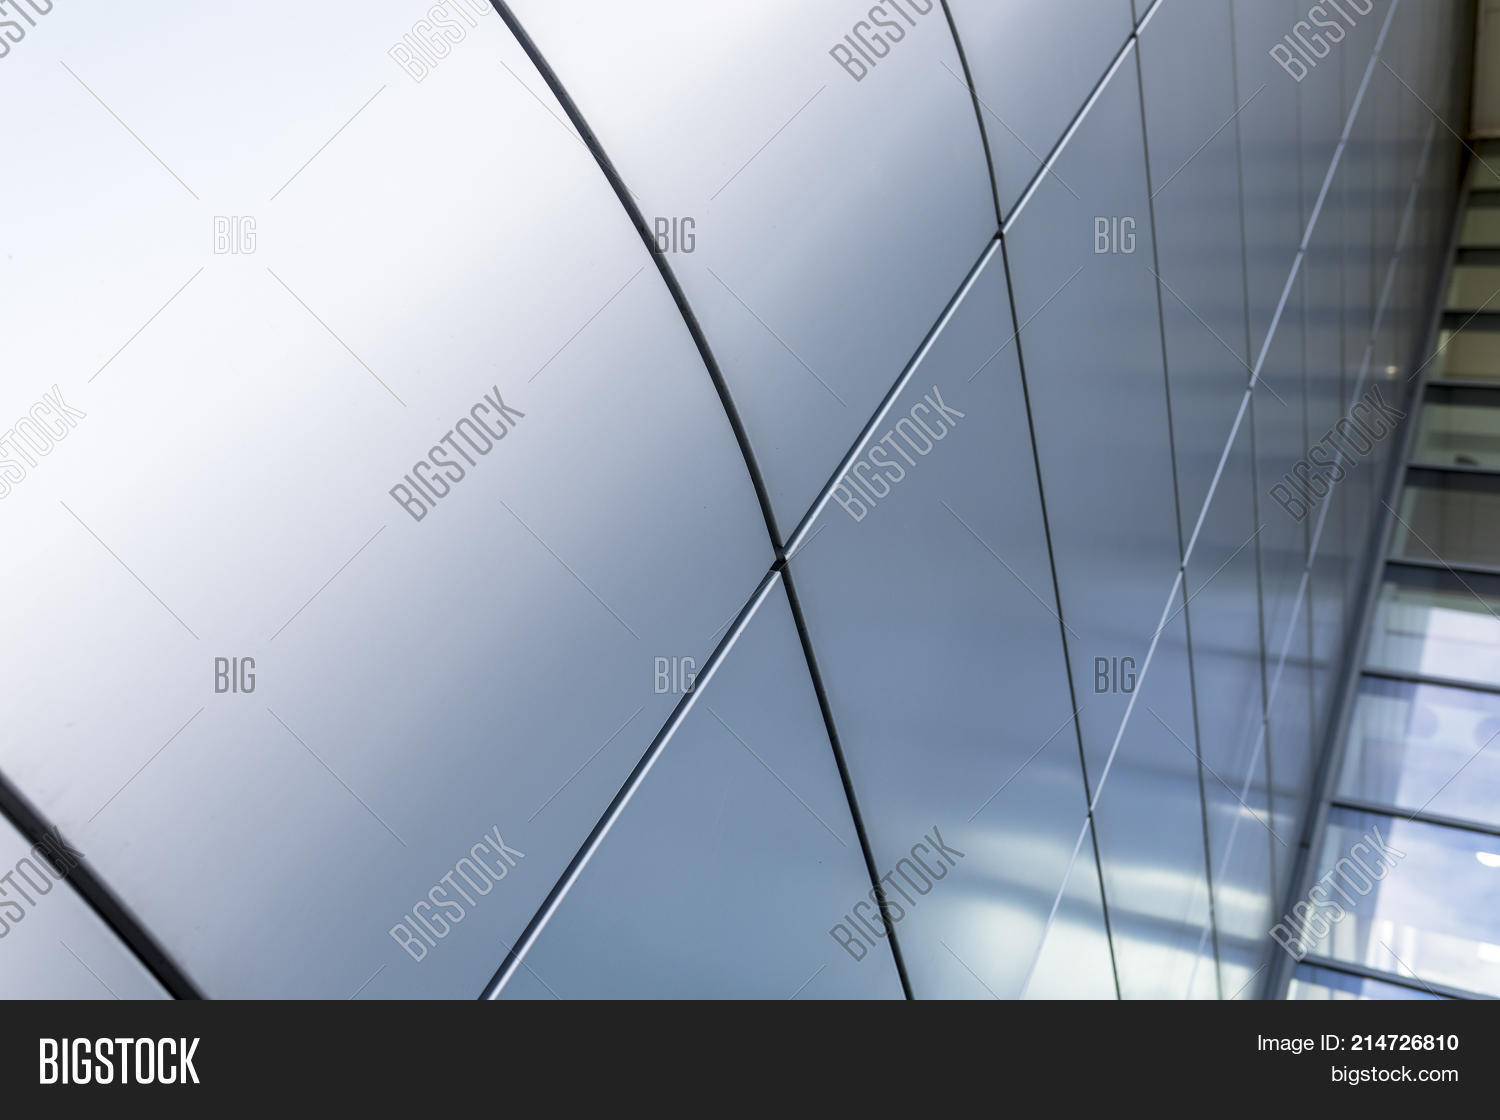 abstract,aluminium,aluminum,architectural,architecture,background,building,business,cladding,composite,construction,corrugated,design,detail,development,engineering,estate,exterior,facade,gray,grey,industrial,industry,iron,material,metal,metallic,modern,panel,pattern,perspective,plate,sheet,silver,steel,structure,surface,texture,textured,urban,wall,zinc